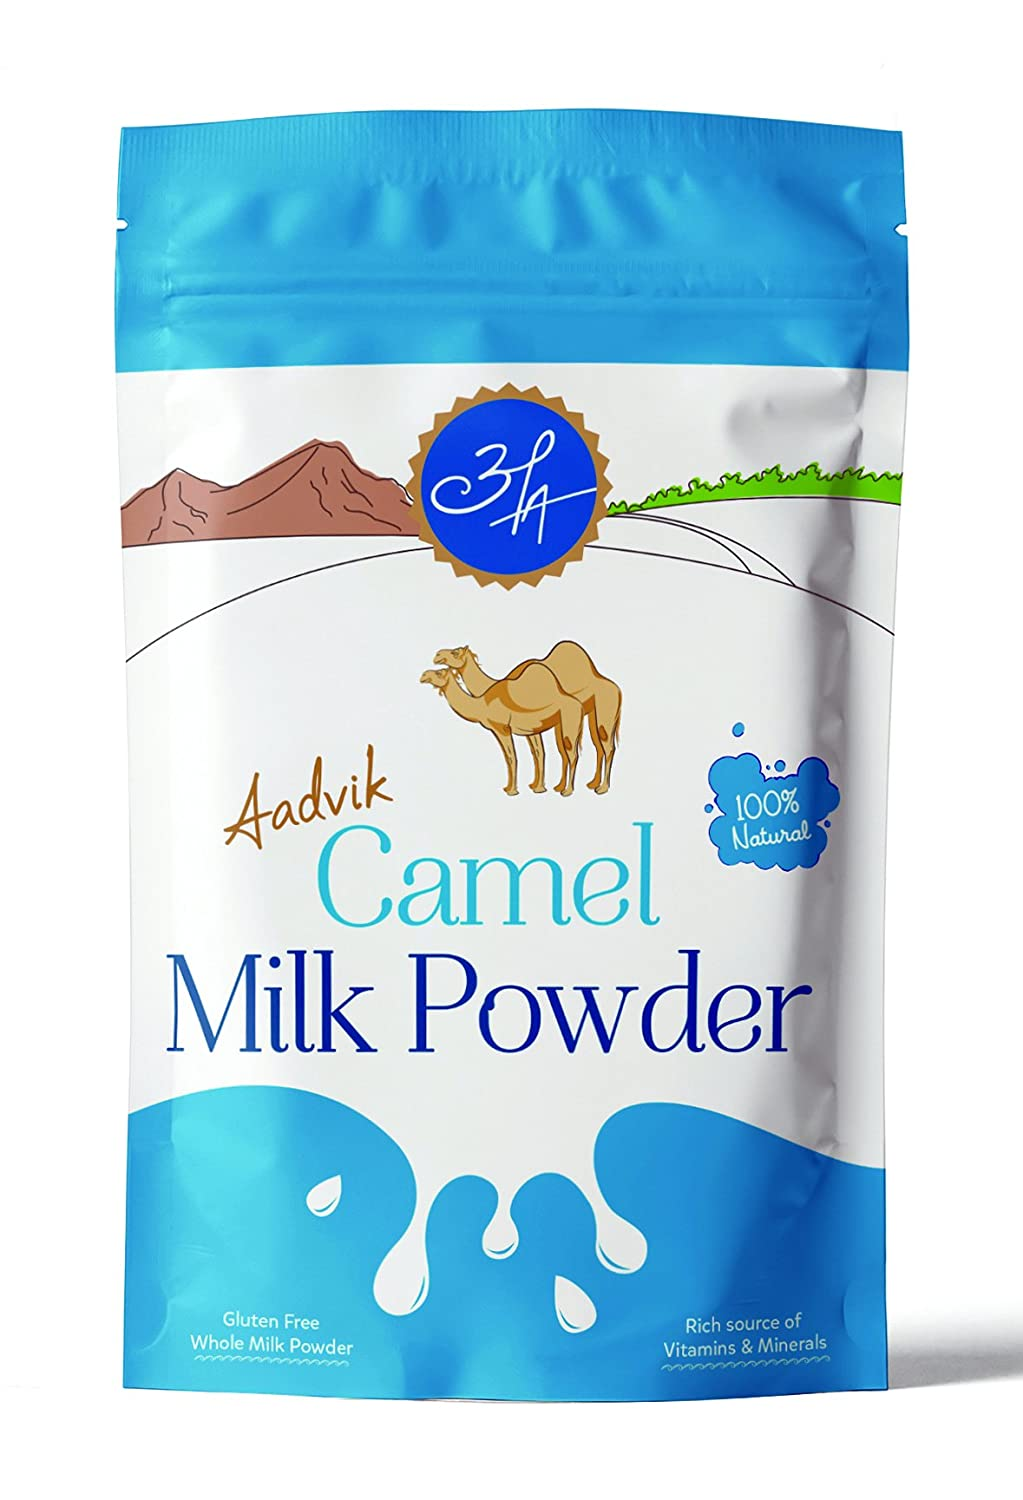 Aadvik Camel Milk Powder, 200g